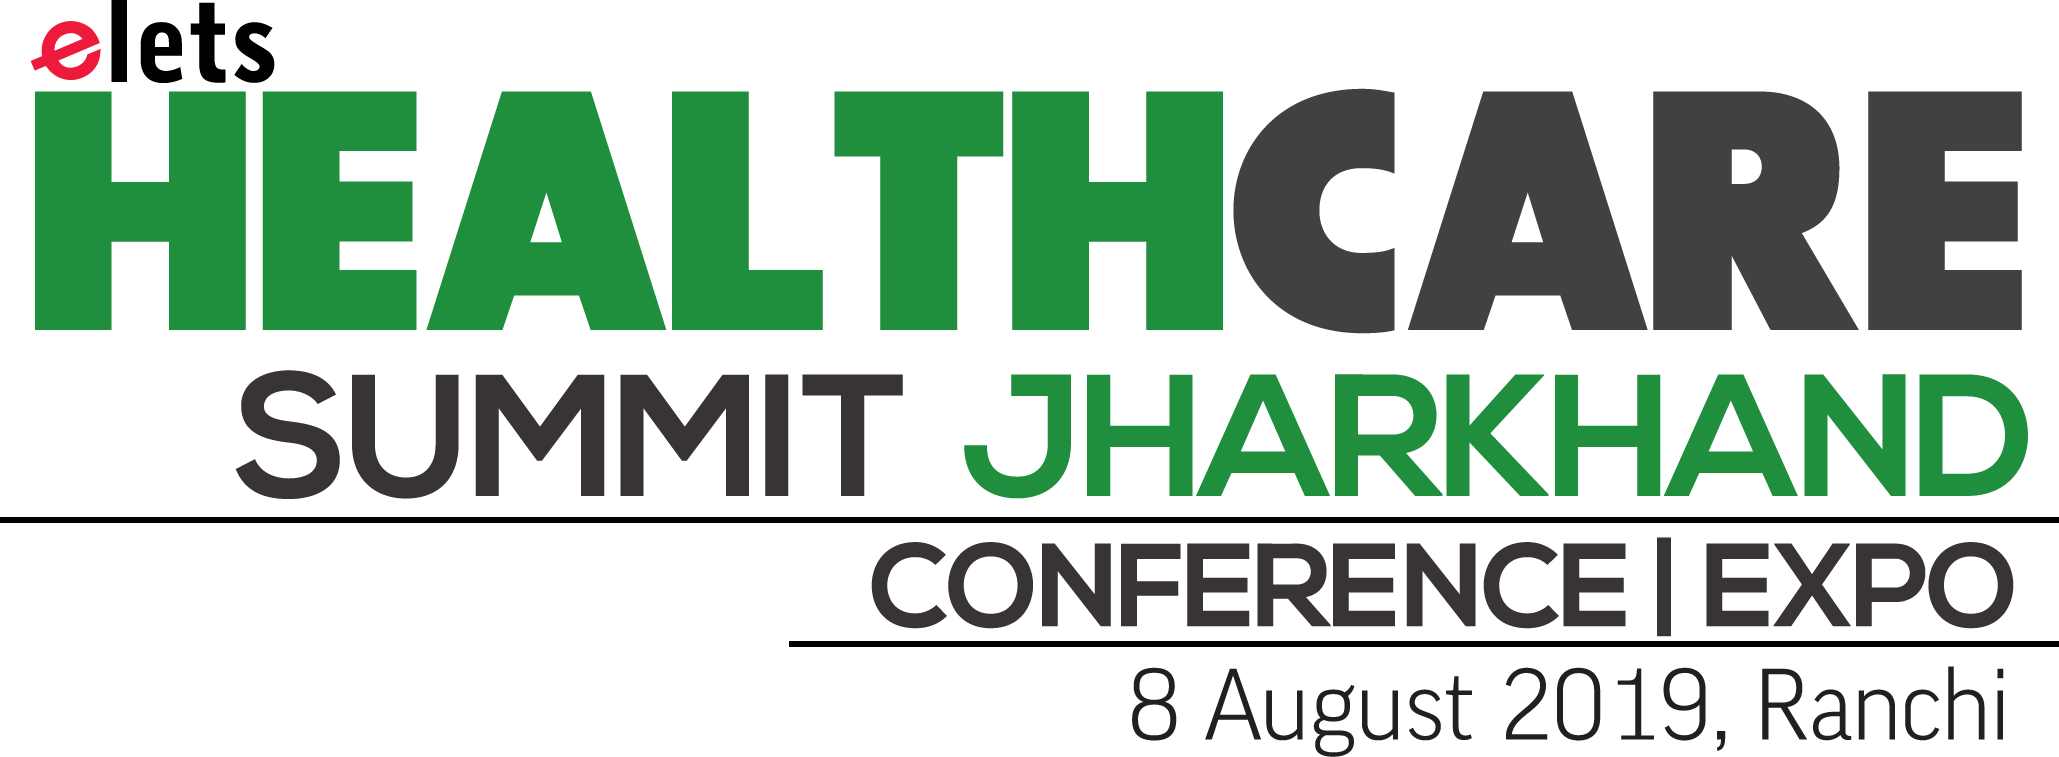 Healthcaresummit jharkhand 2019